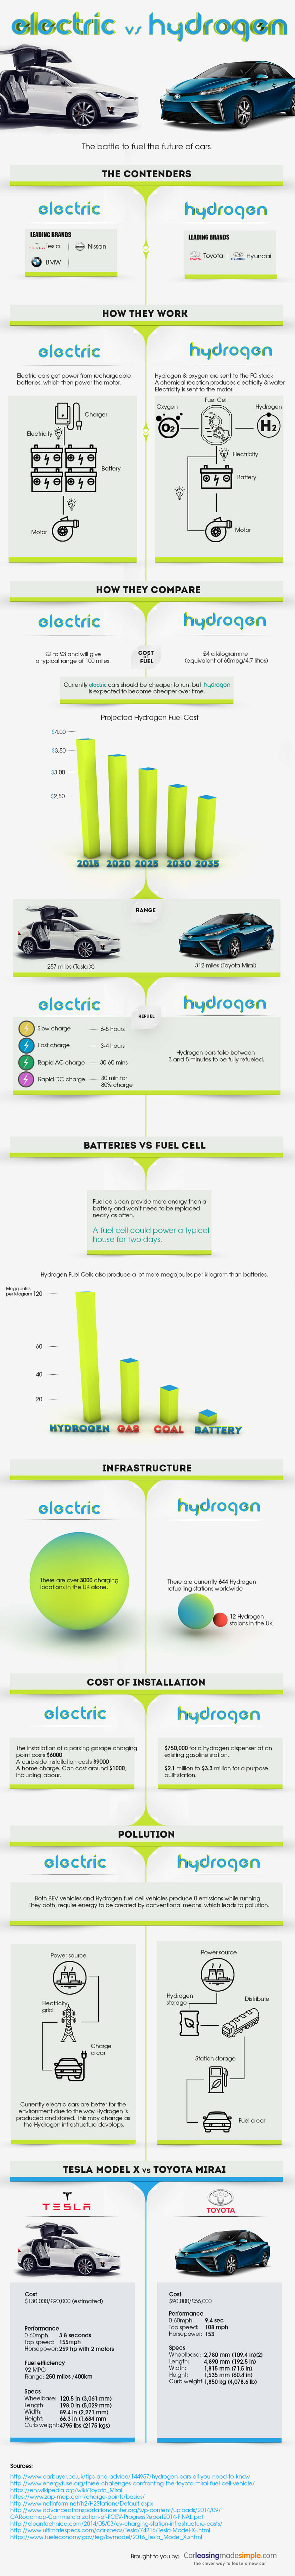 Electric vs Hydrogen Future of Cars Infographic